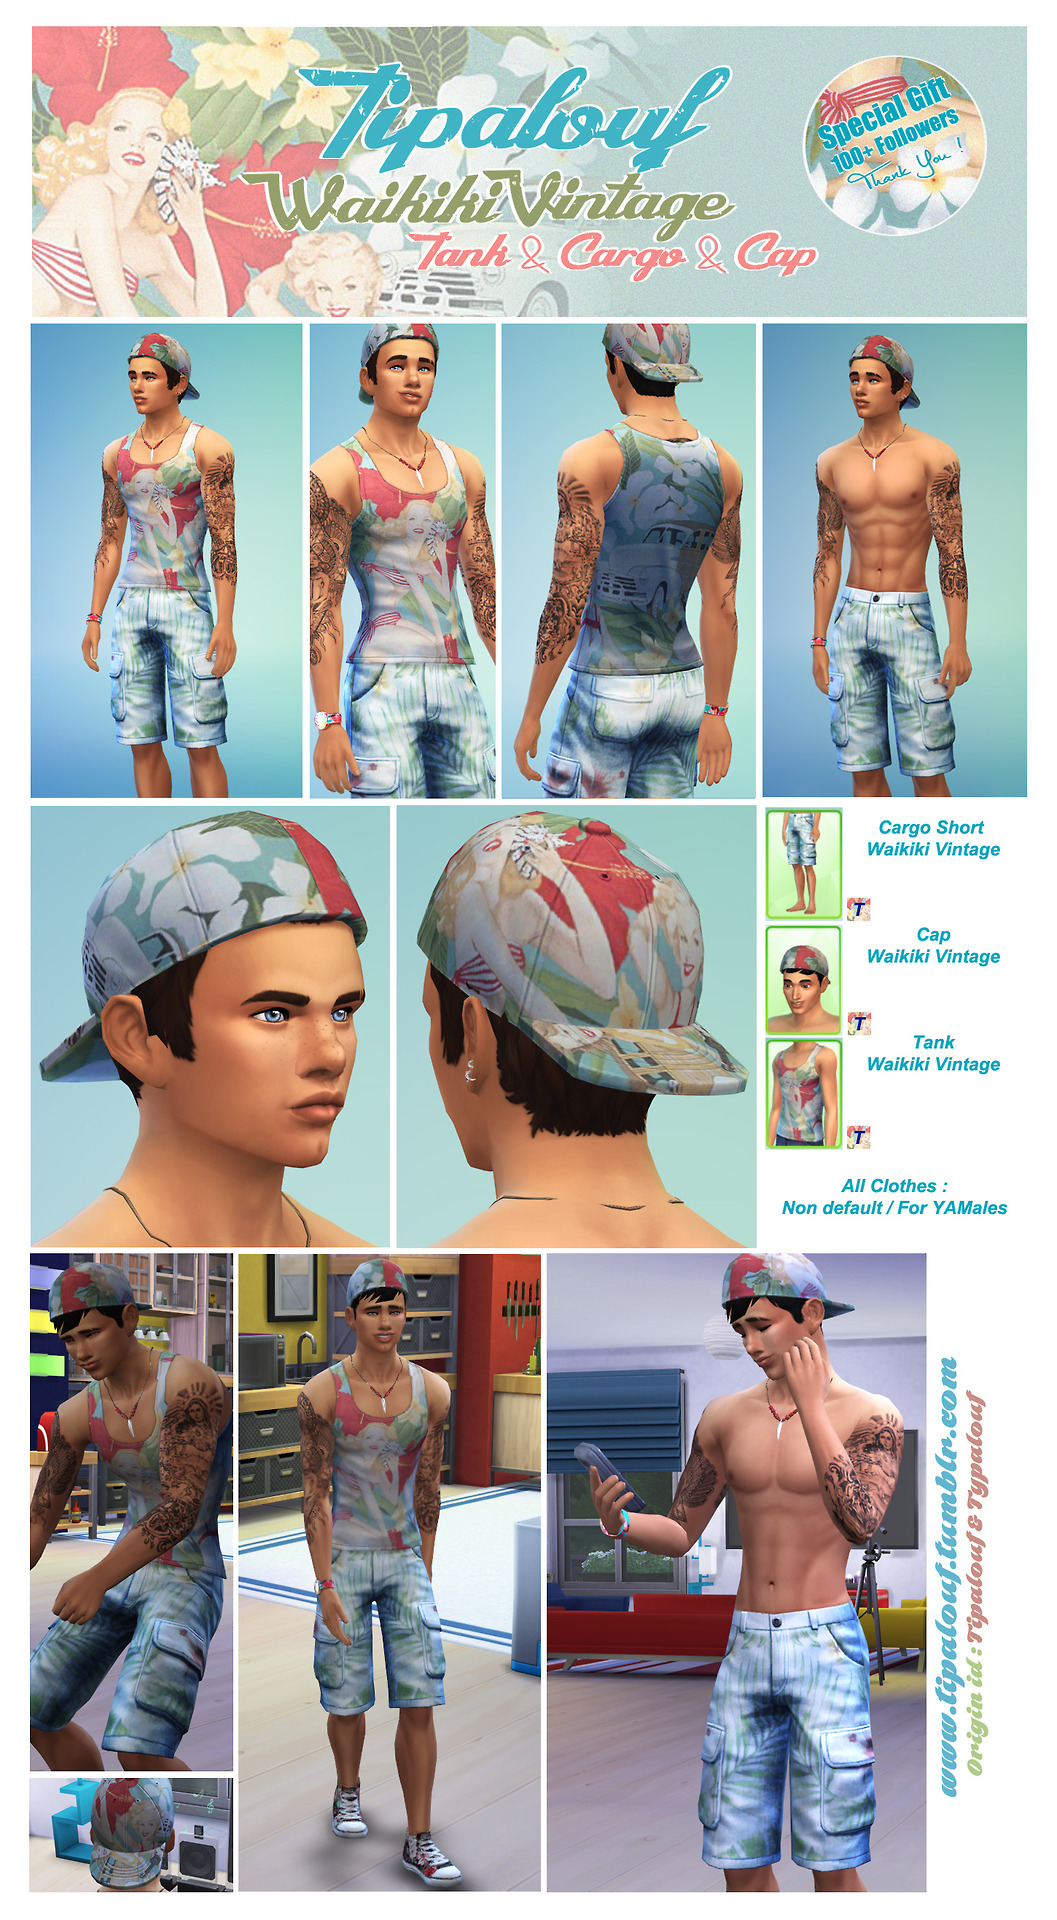 Waikiki Vintage Clothes (Cap - Cargo Shorts - Tank) by Tipalouf